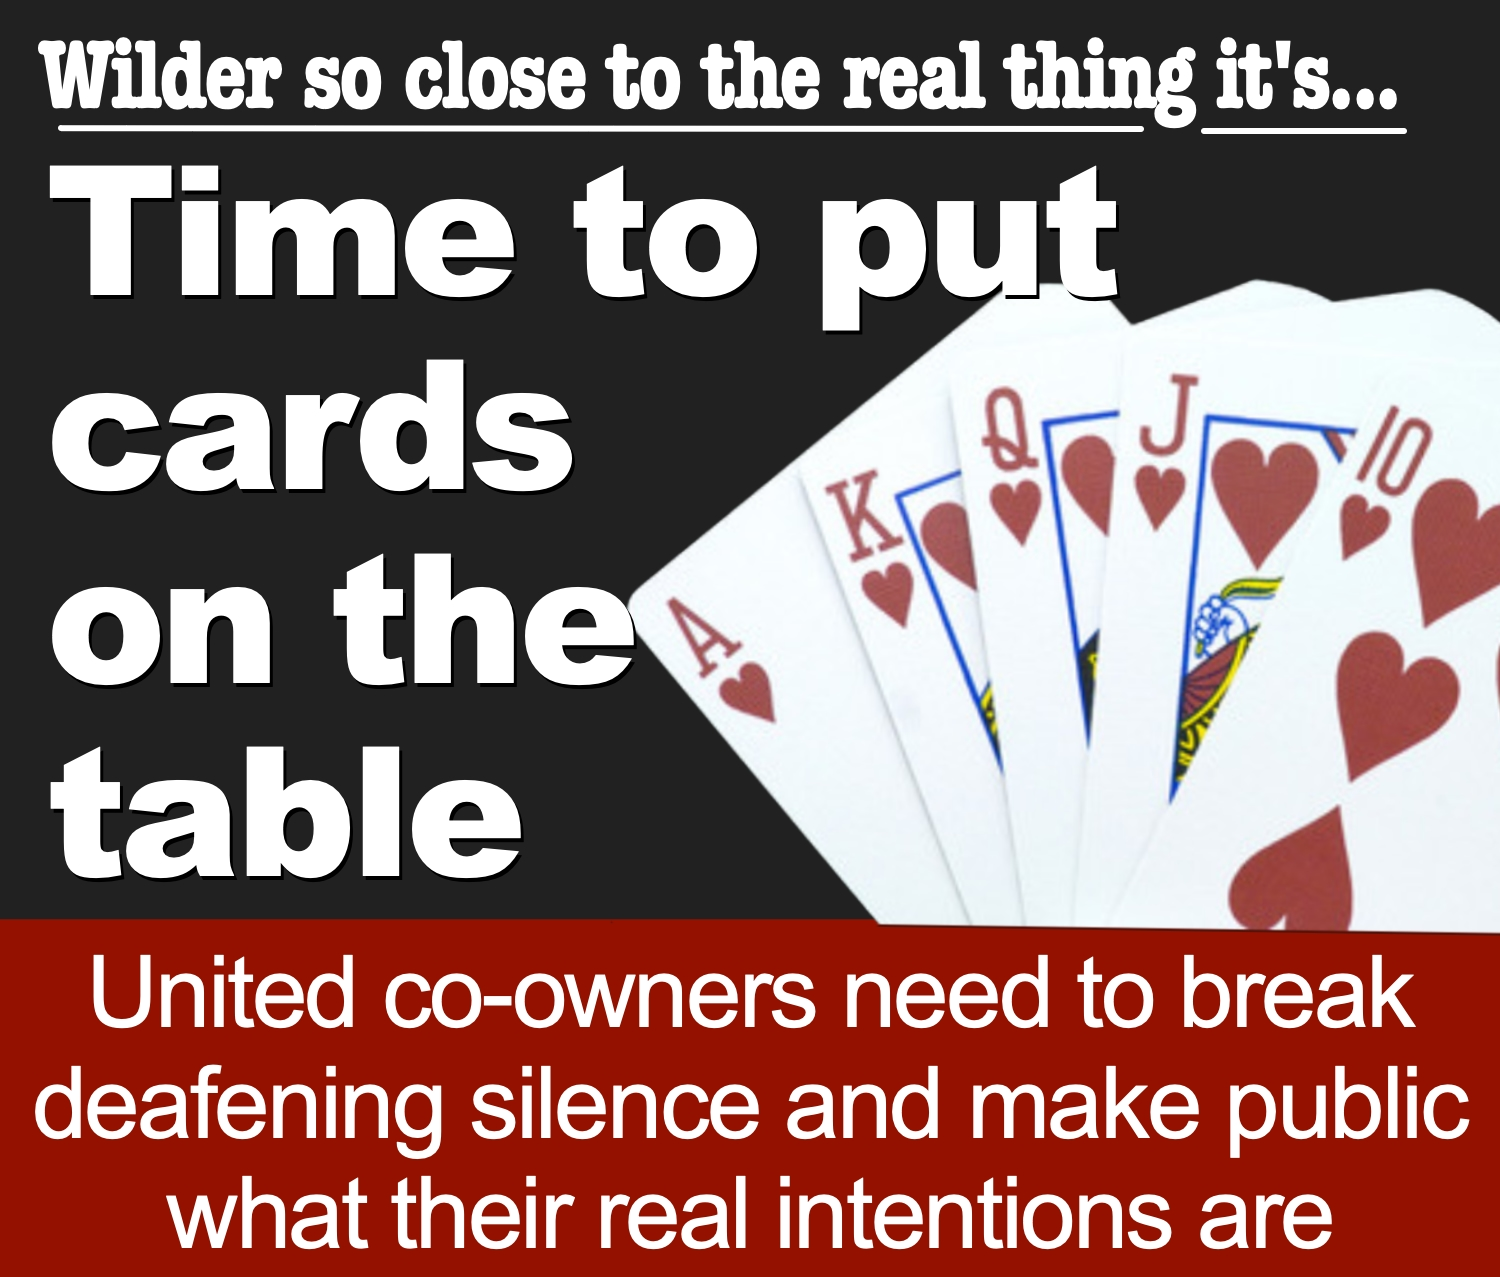 Time for Sheffield United's warring co-owners to put cards on the table as Blades boss Wilder moves ever-closer to Premier dream at Bramall Lane